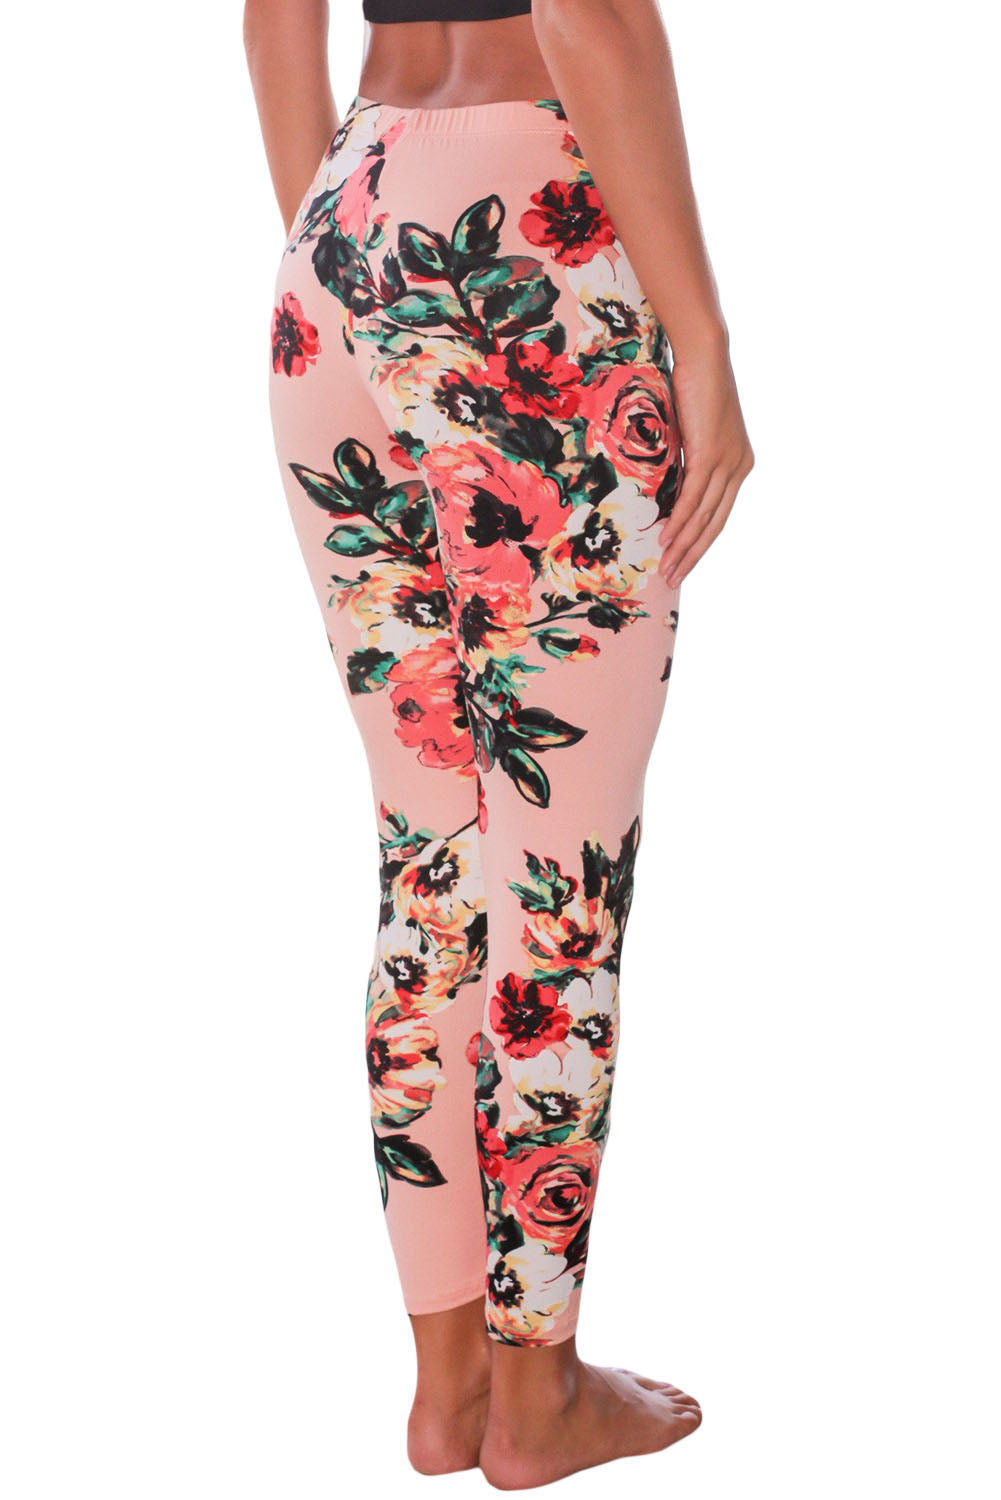 Blush Floral Stretchy Leggings